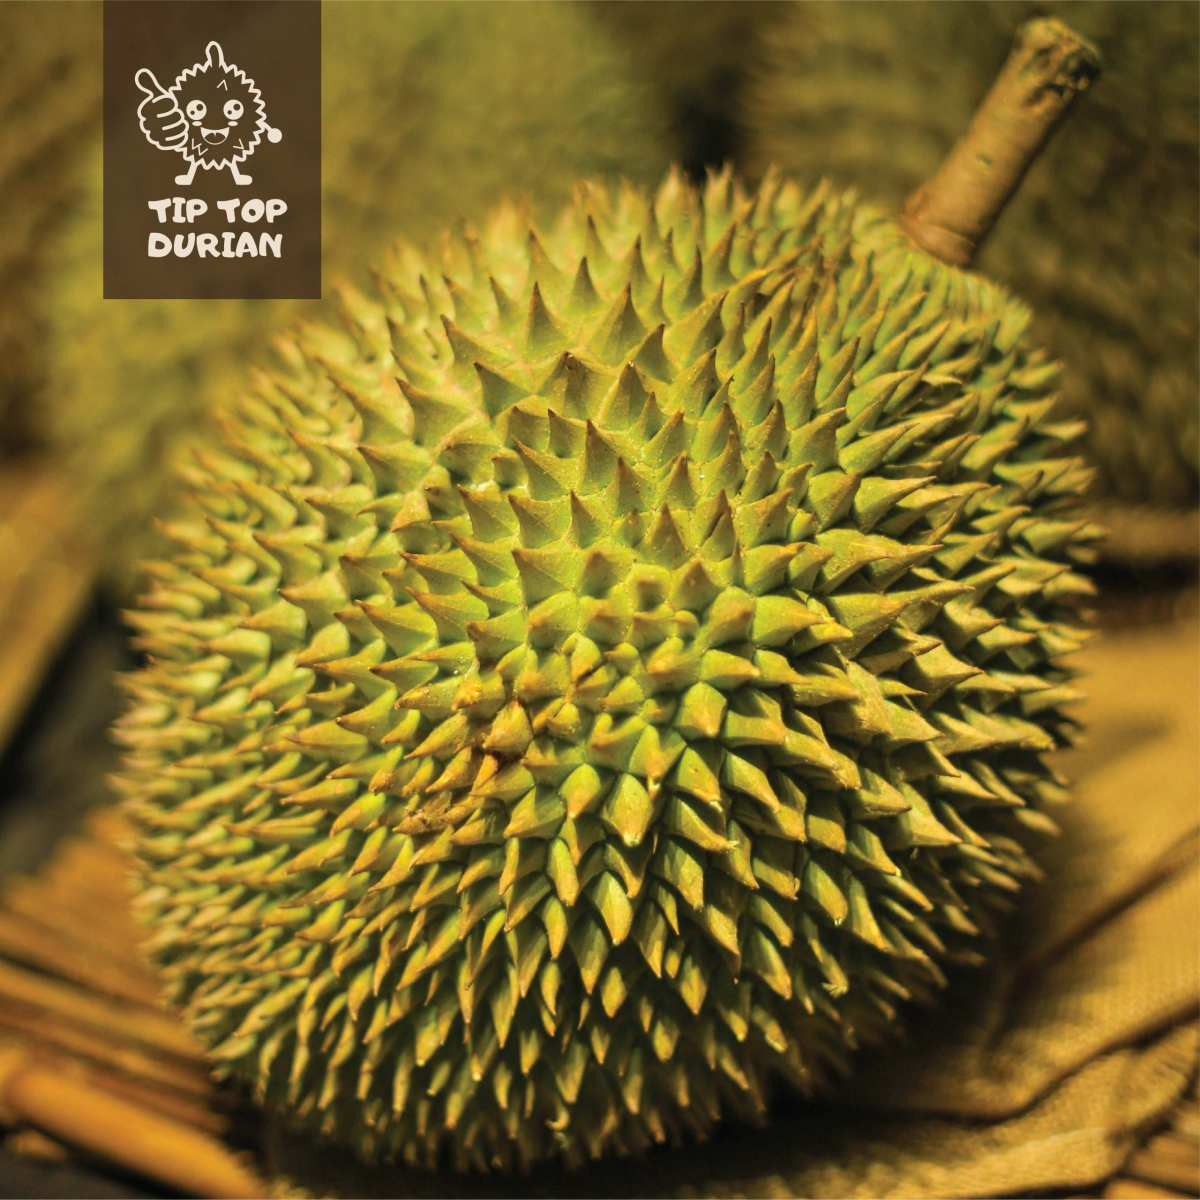 Super XO Premium (2) | Tip Top Durian Delivery | Malaysia Top Fresh Durian Online Delivery